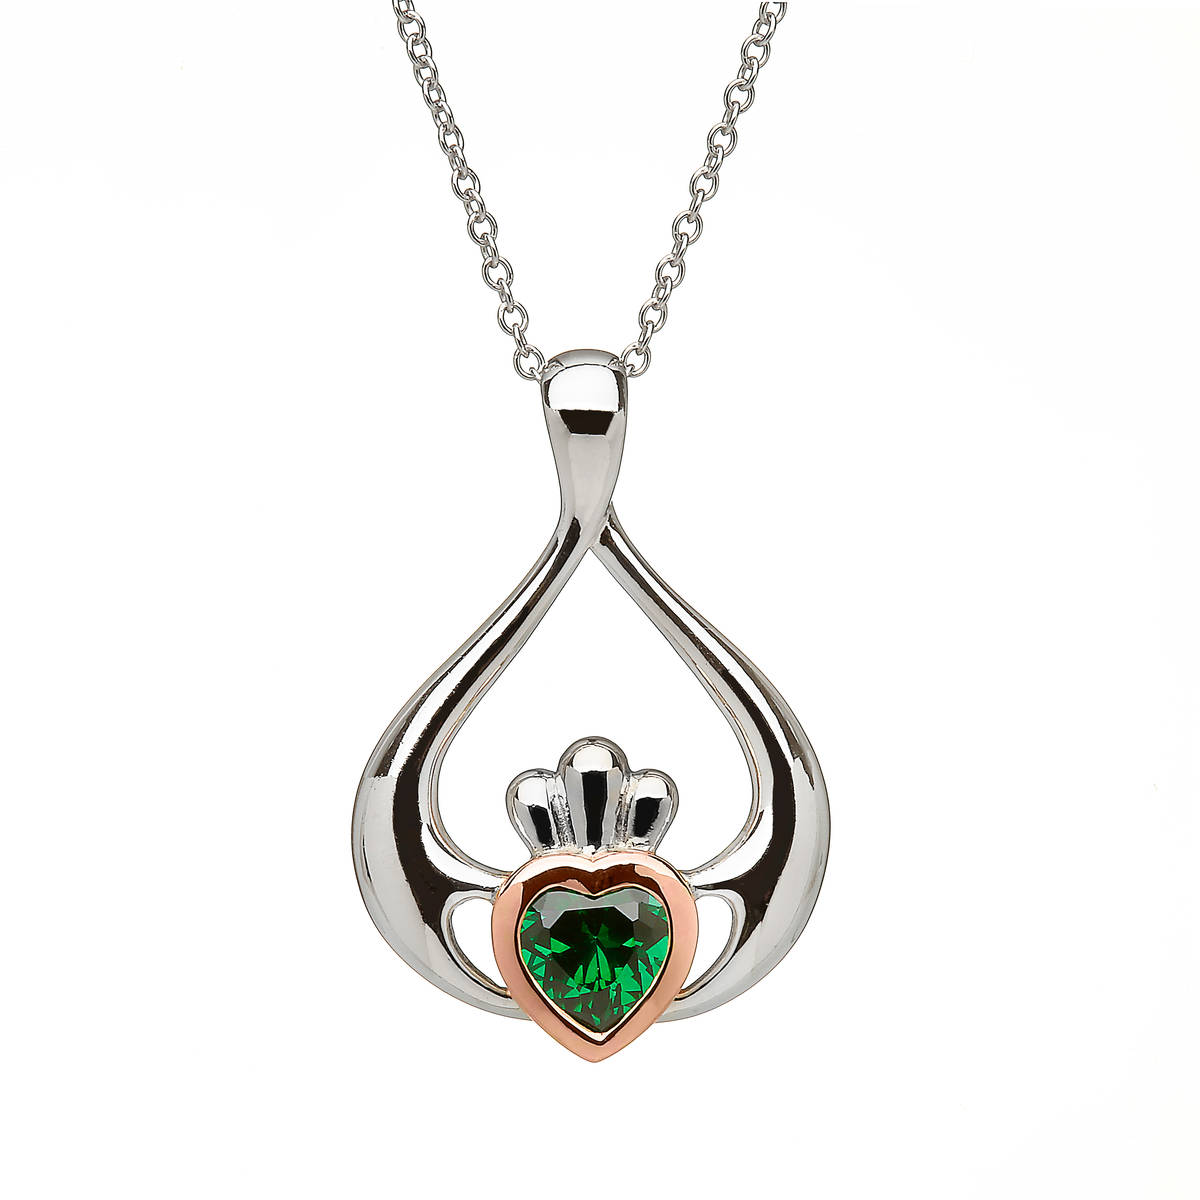 sterling silver and rare Irish rose gold Claddagh pendant with green cz stone.